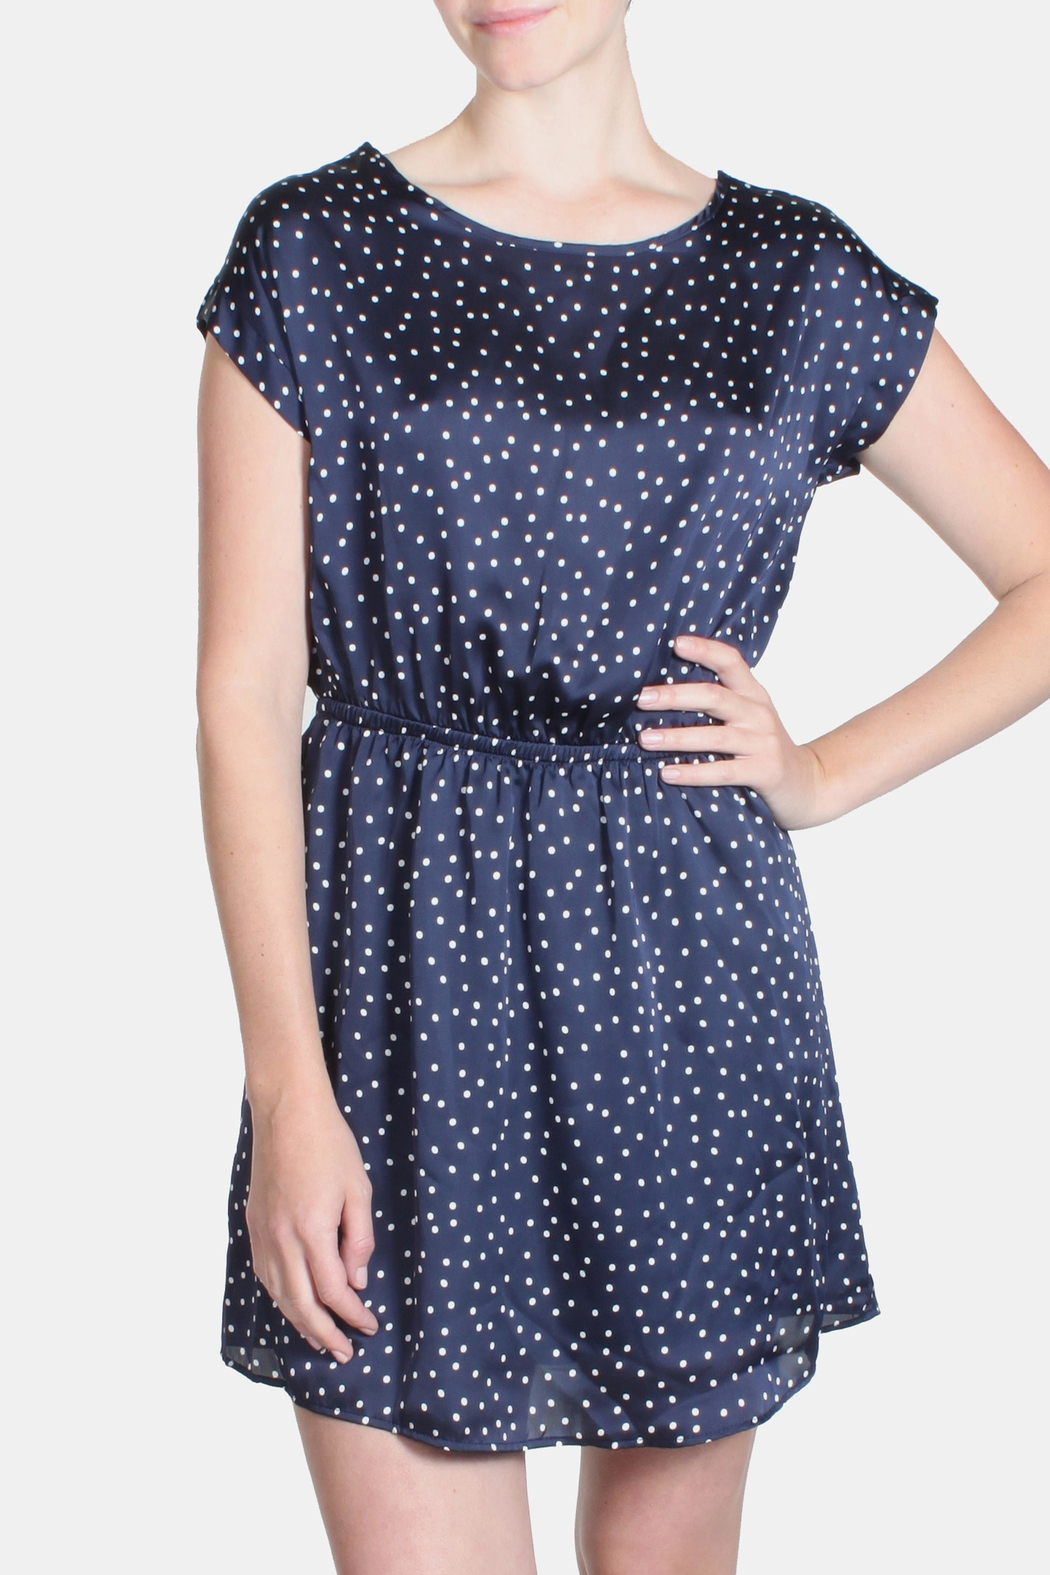 Le Lis Satin Polka Dot Dress - Main Image